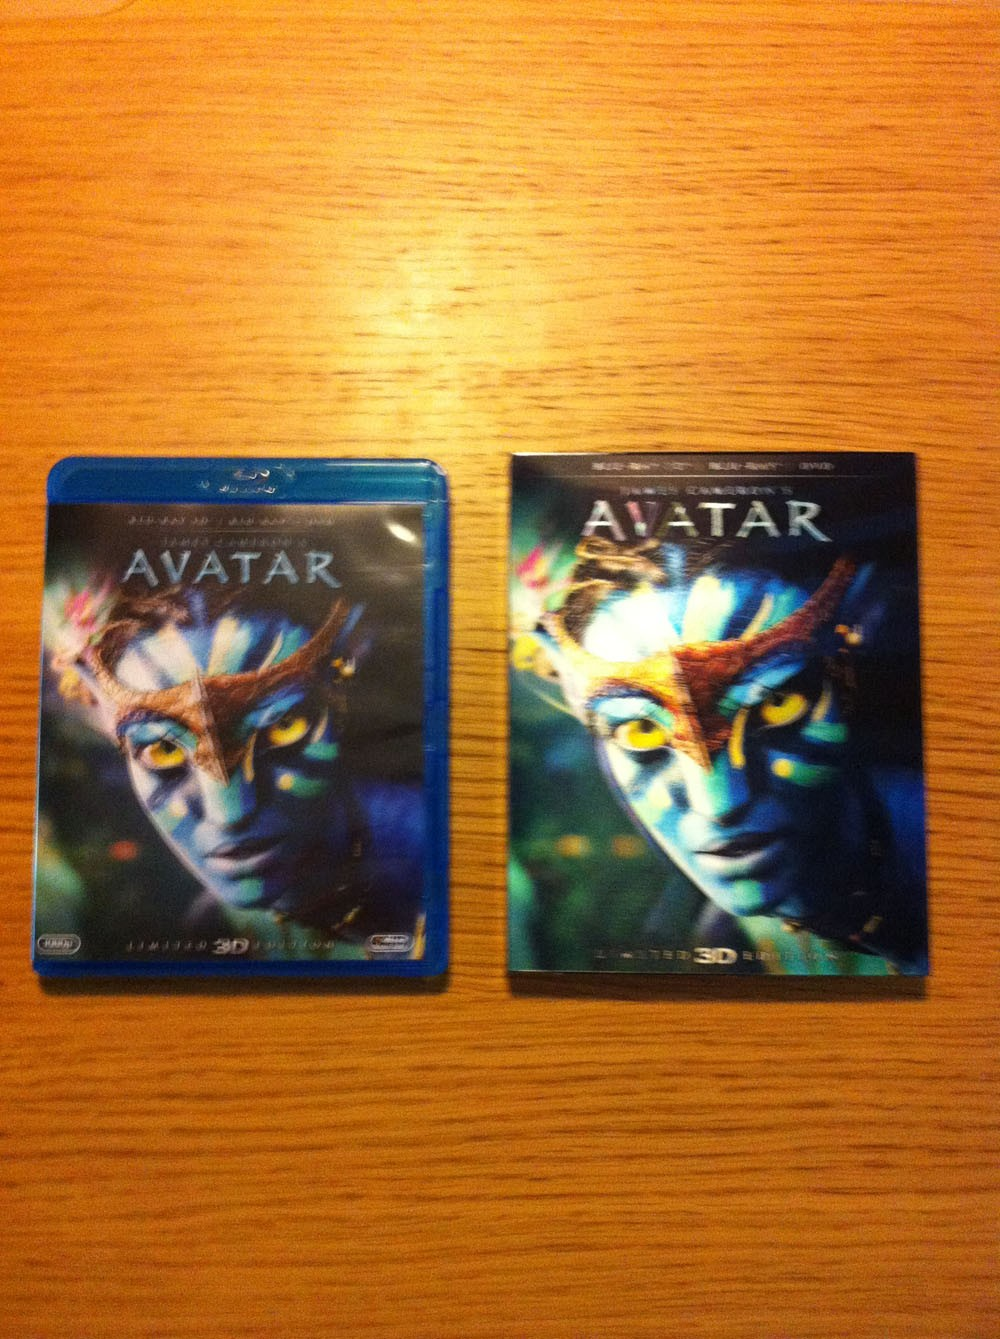 Look what i got... Avatar11